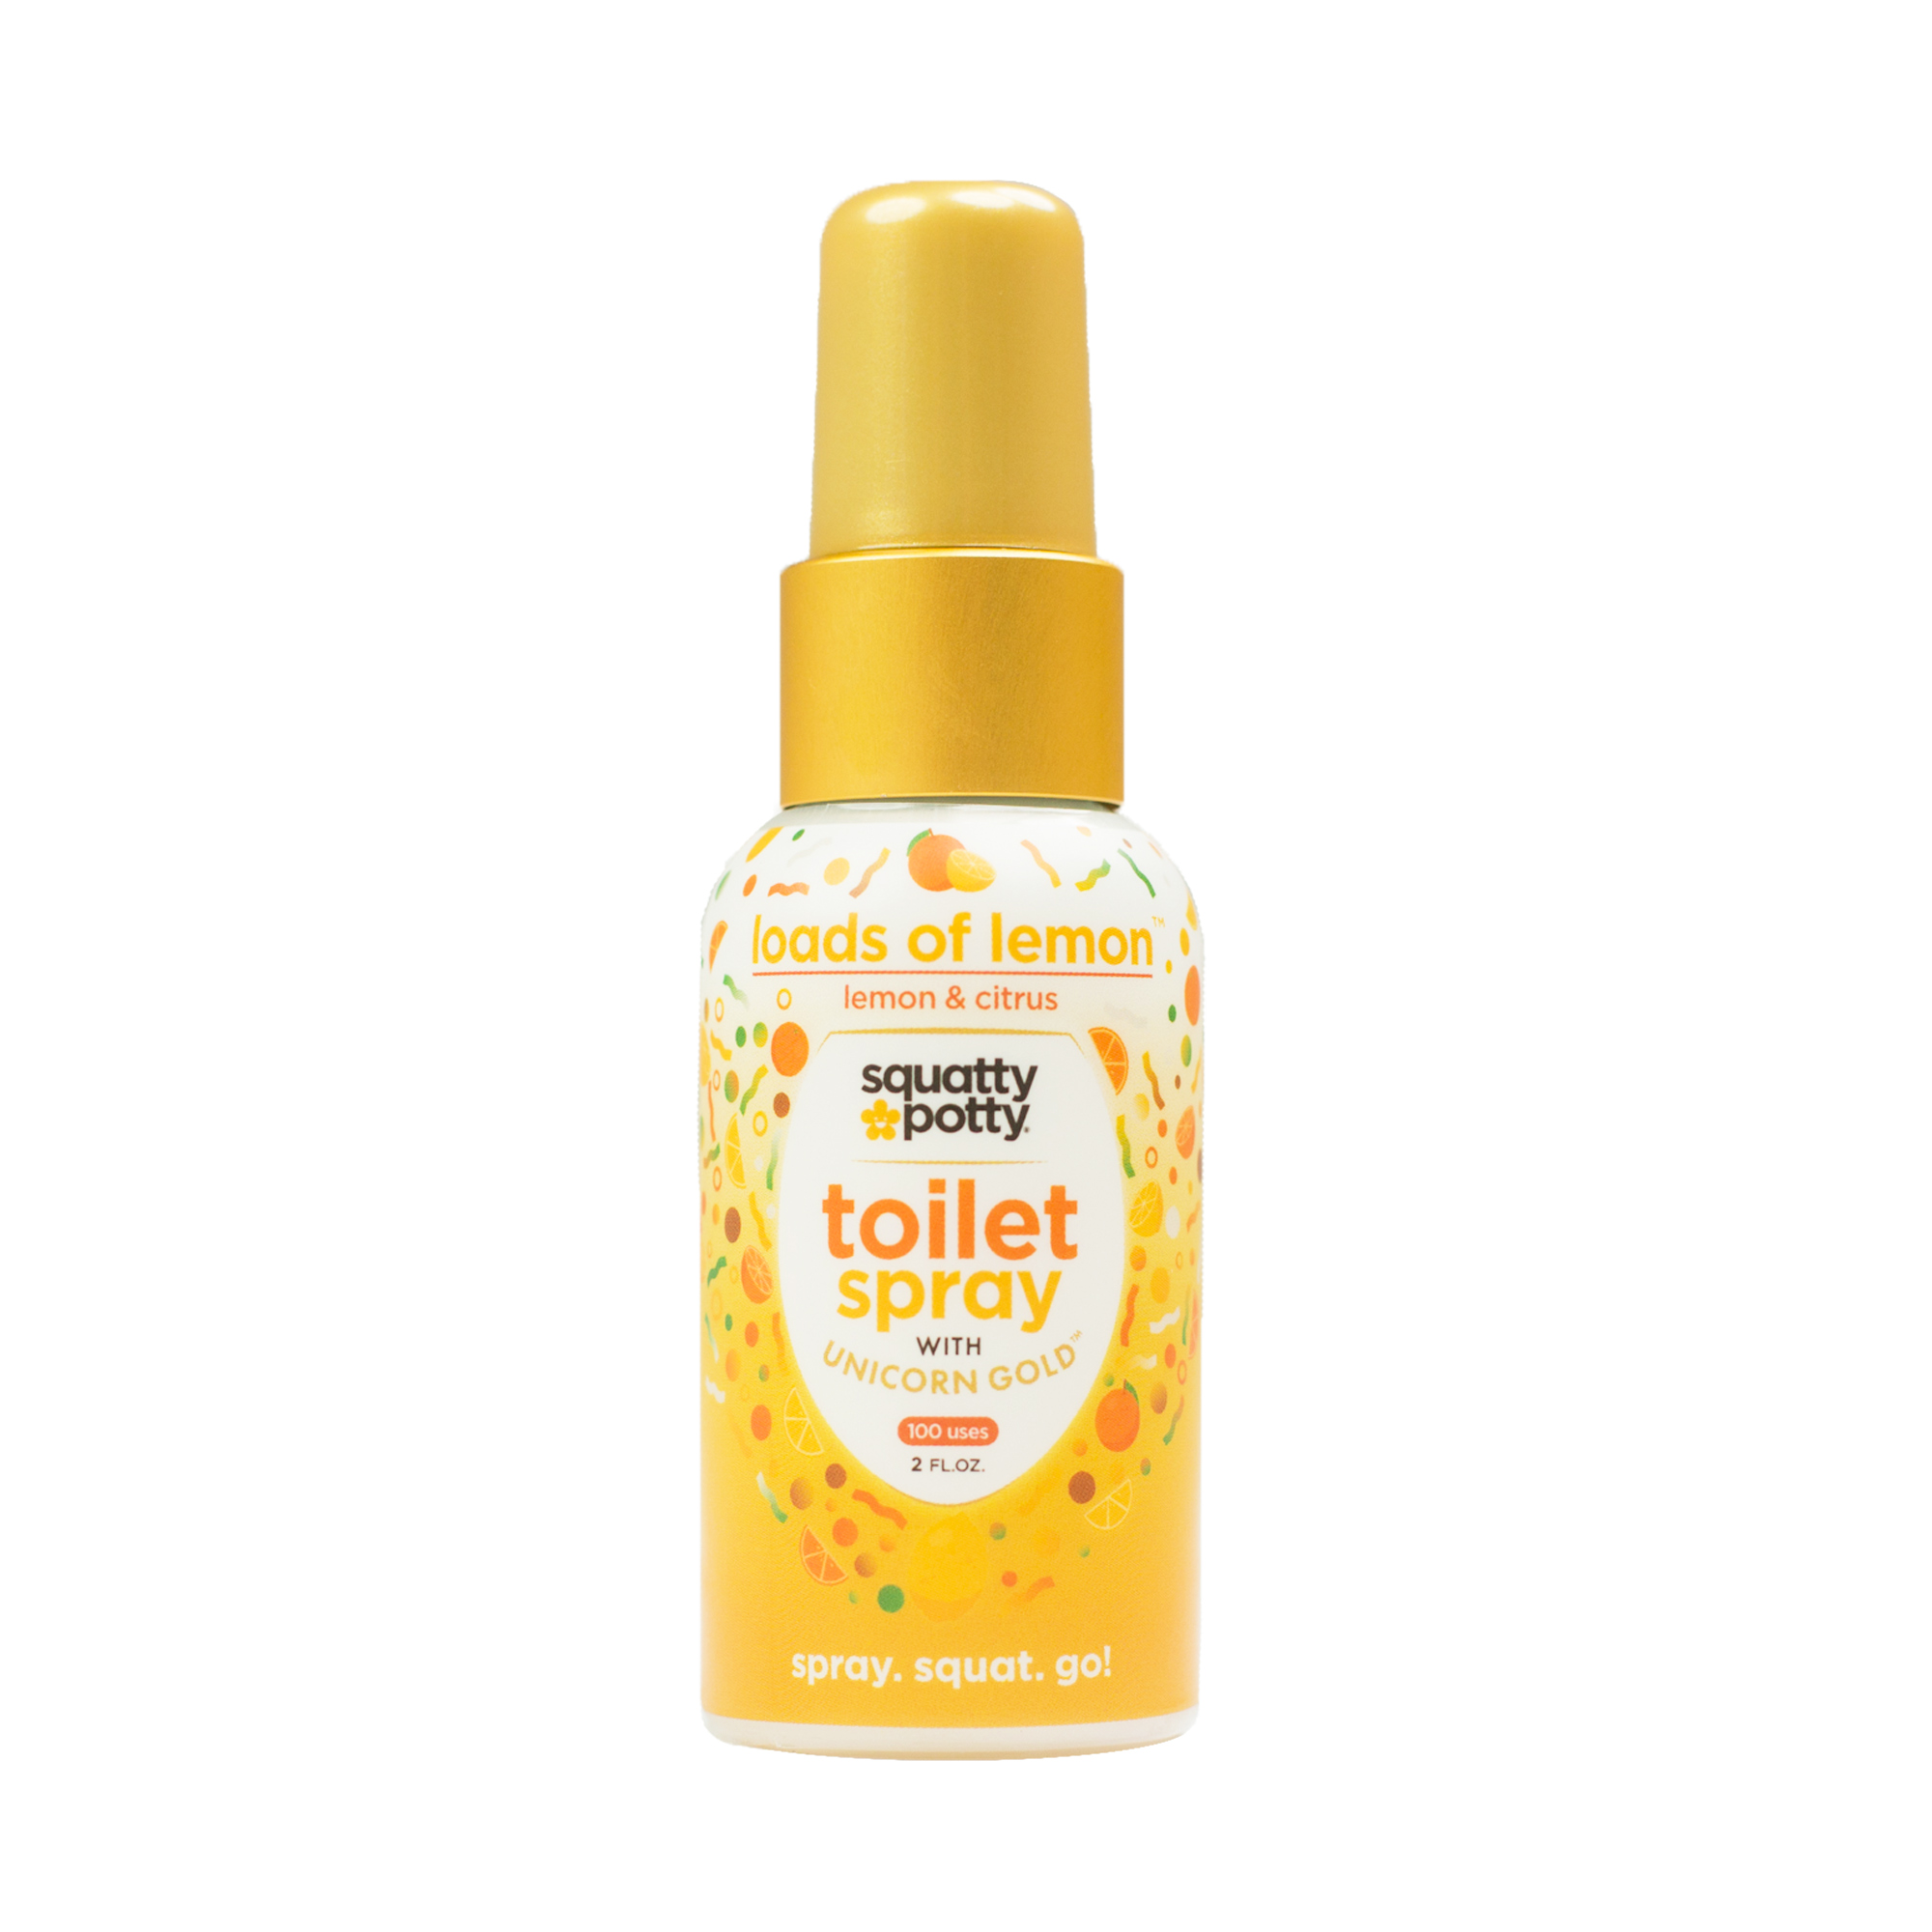 Unicorn Gold is a 'before-you-squat' potty spray. Just a few sprays of Unicorn Gold into the toilet bowl and that, skunky, putrid bathroom stench stays where it belongs – trapped deep below the surface of the toilet water. Made with REAL GOLD!